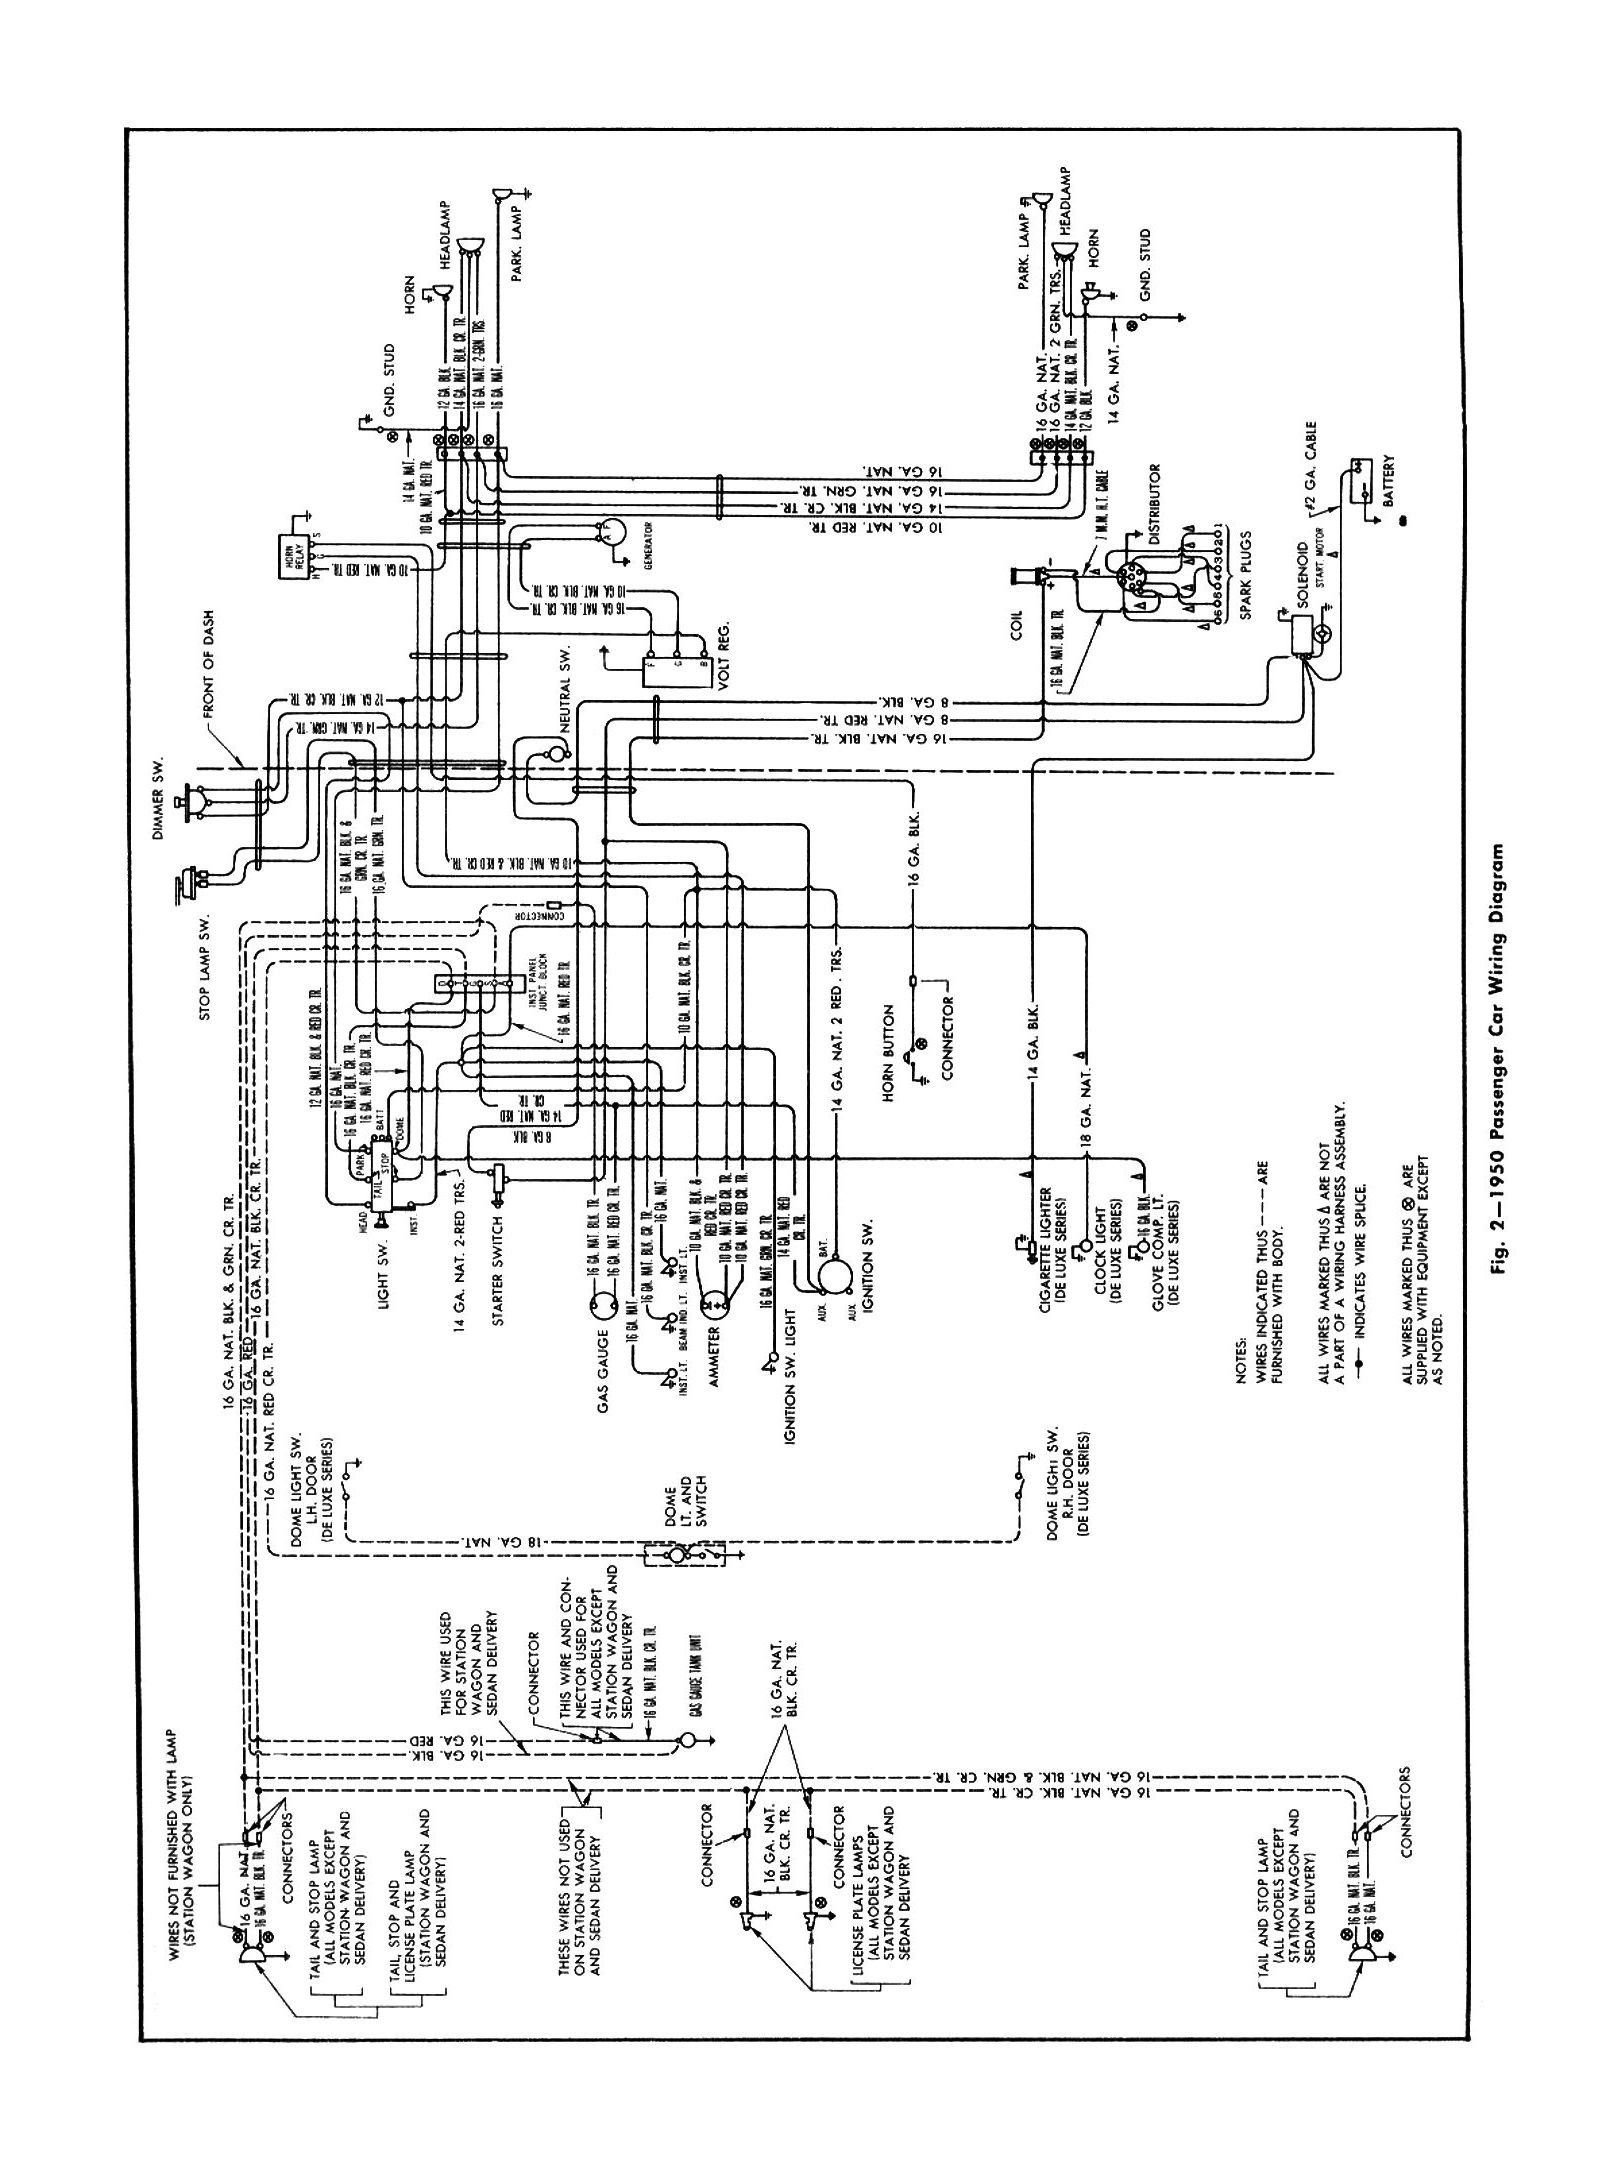 Wiring Diagram for Car Engine #diagram #diagramtemplate #